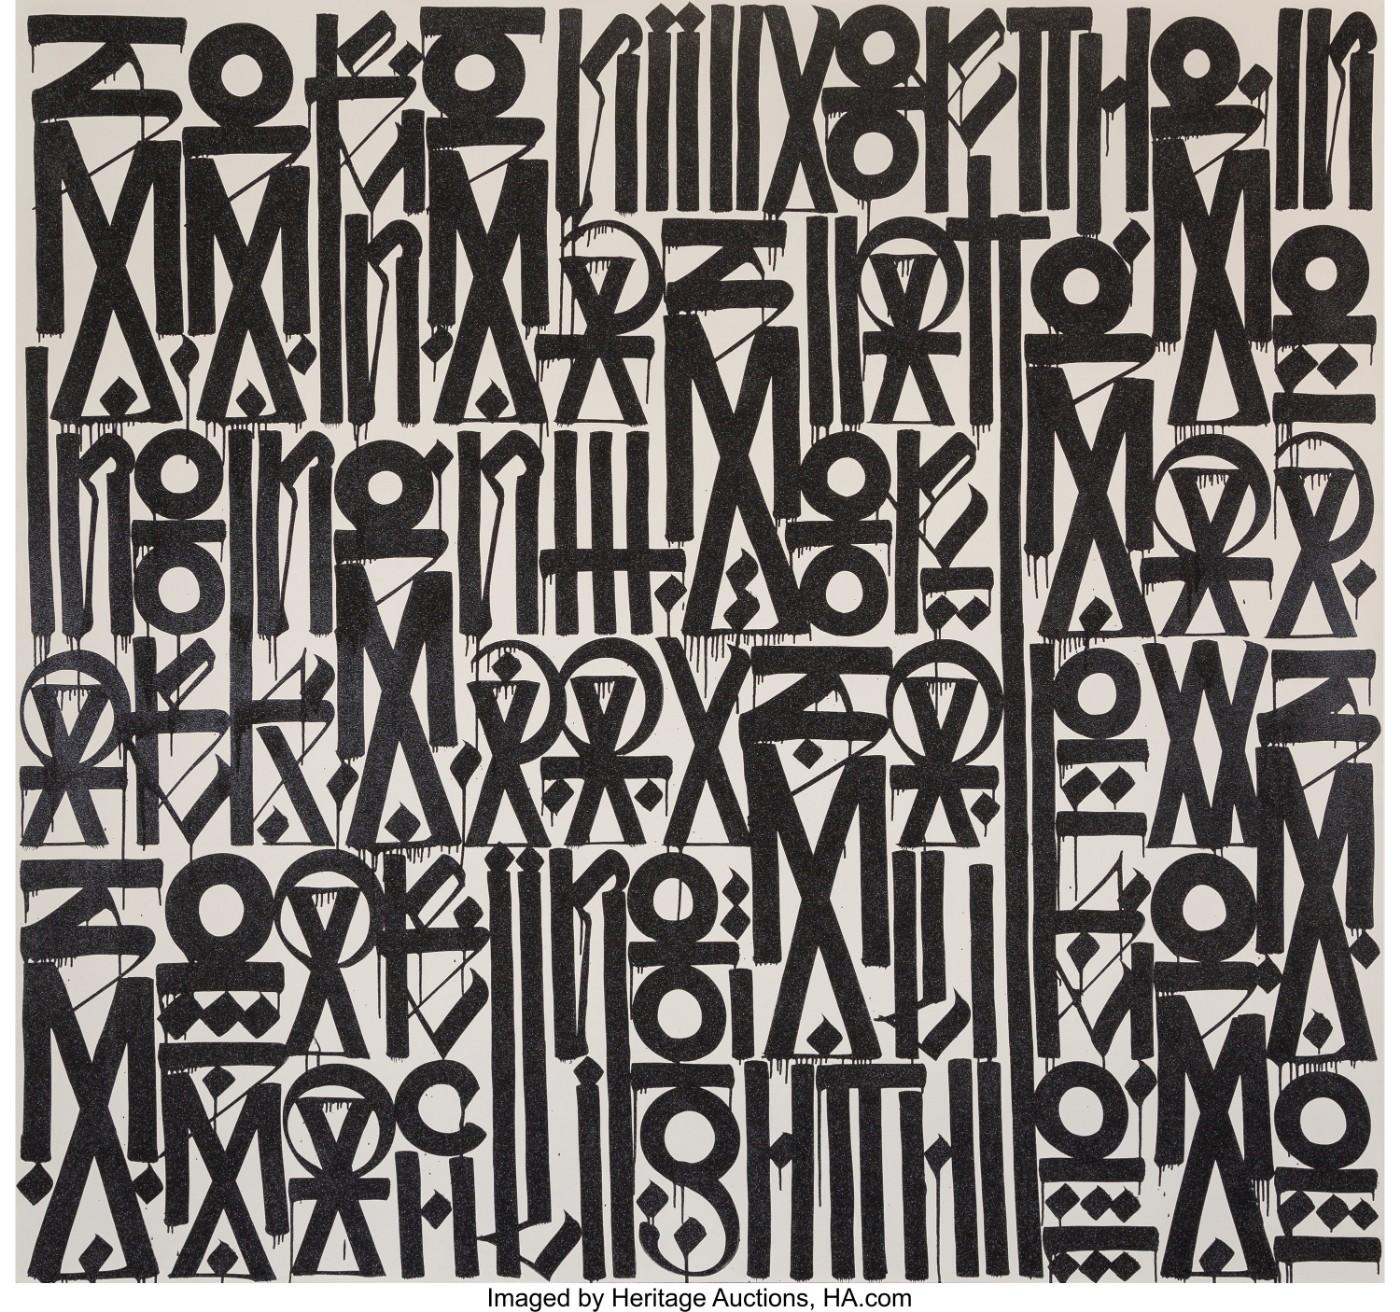 Largest Artwork by RETNA Sets New Artist Auction Record   Art & Object